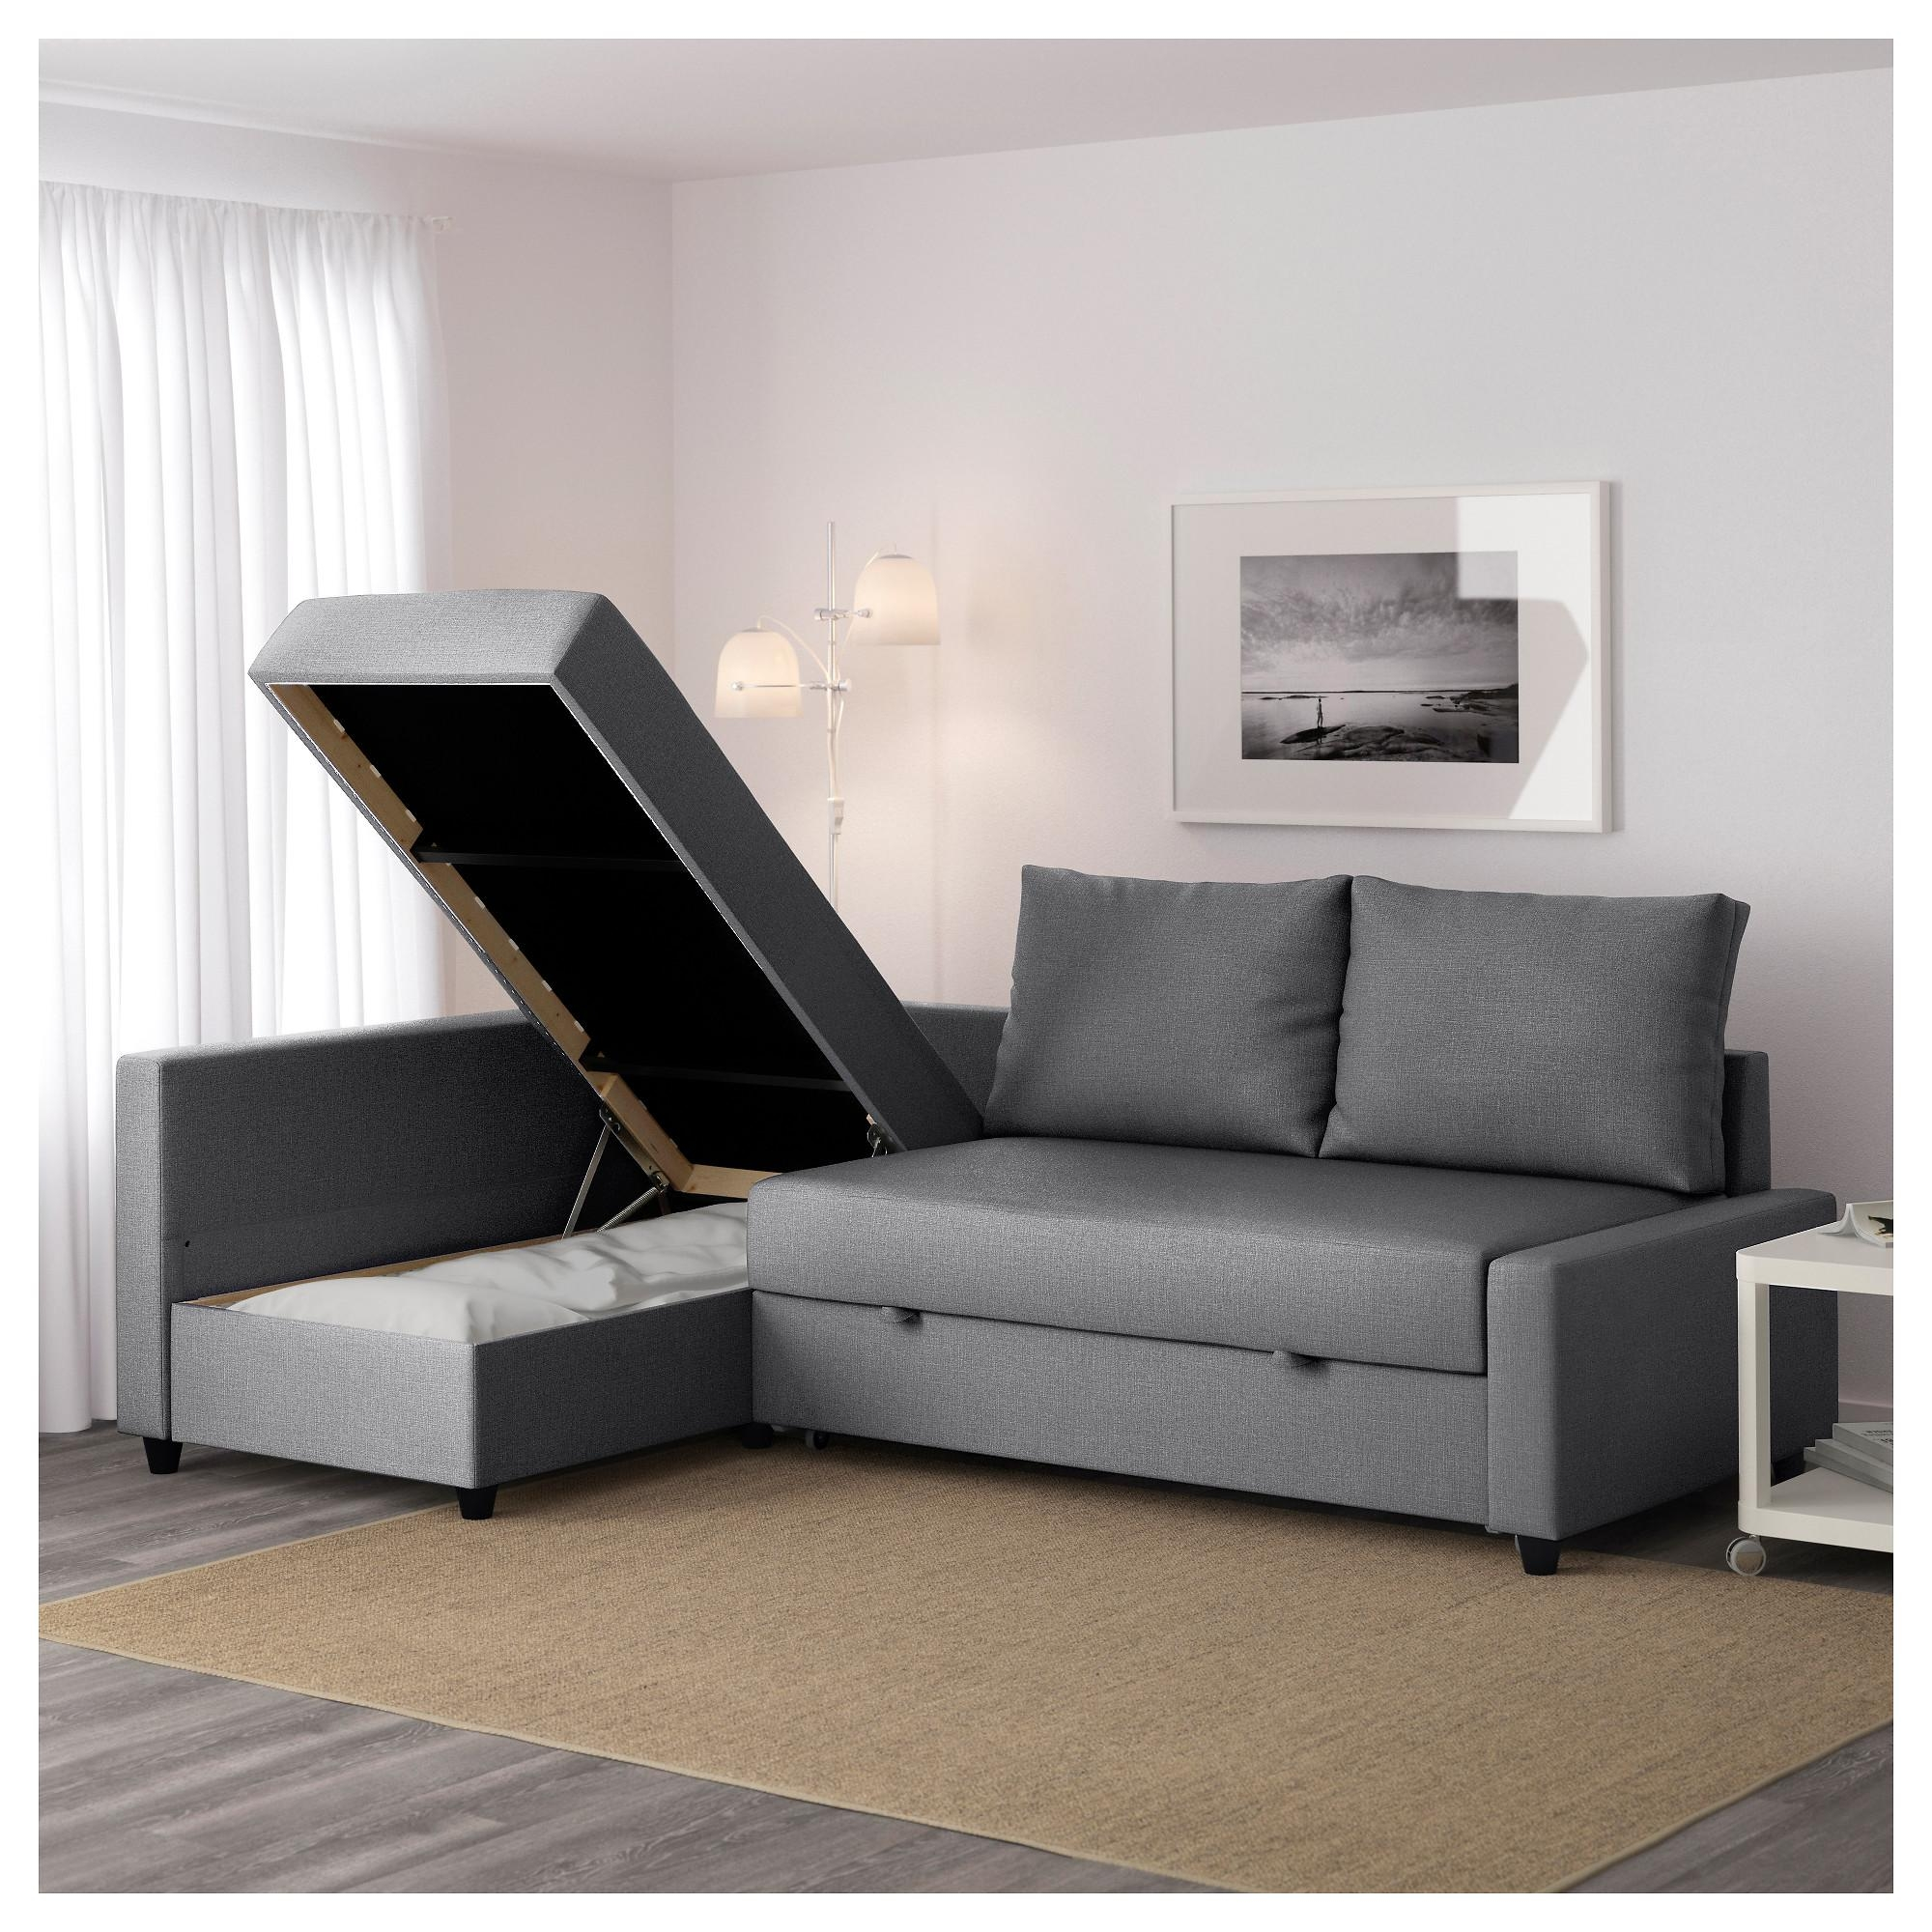 Friheten Corner Sofa Bed With Storage – Skiftebo Dark Grey – Ikea Regarding Storage Sofa Beds (View 8 of 20)